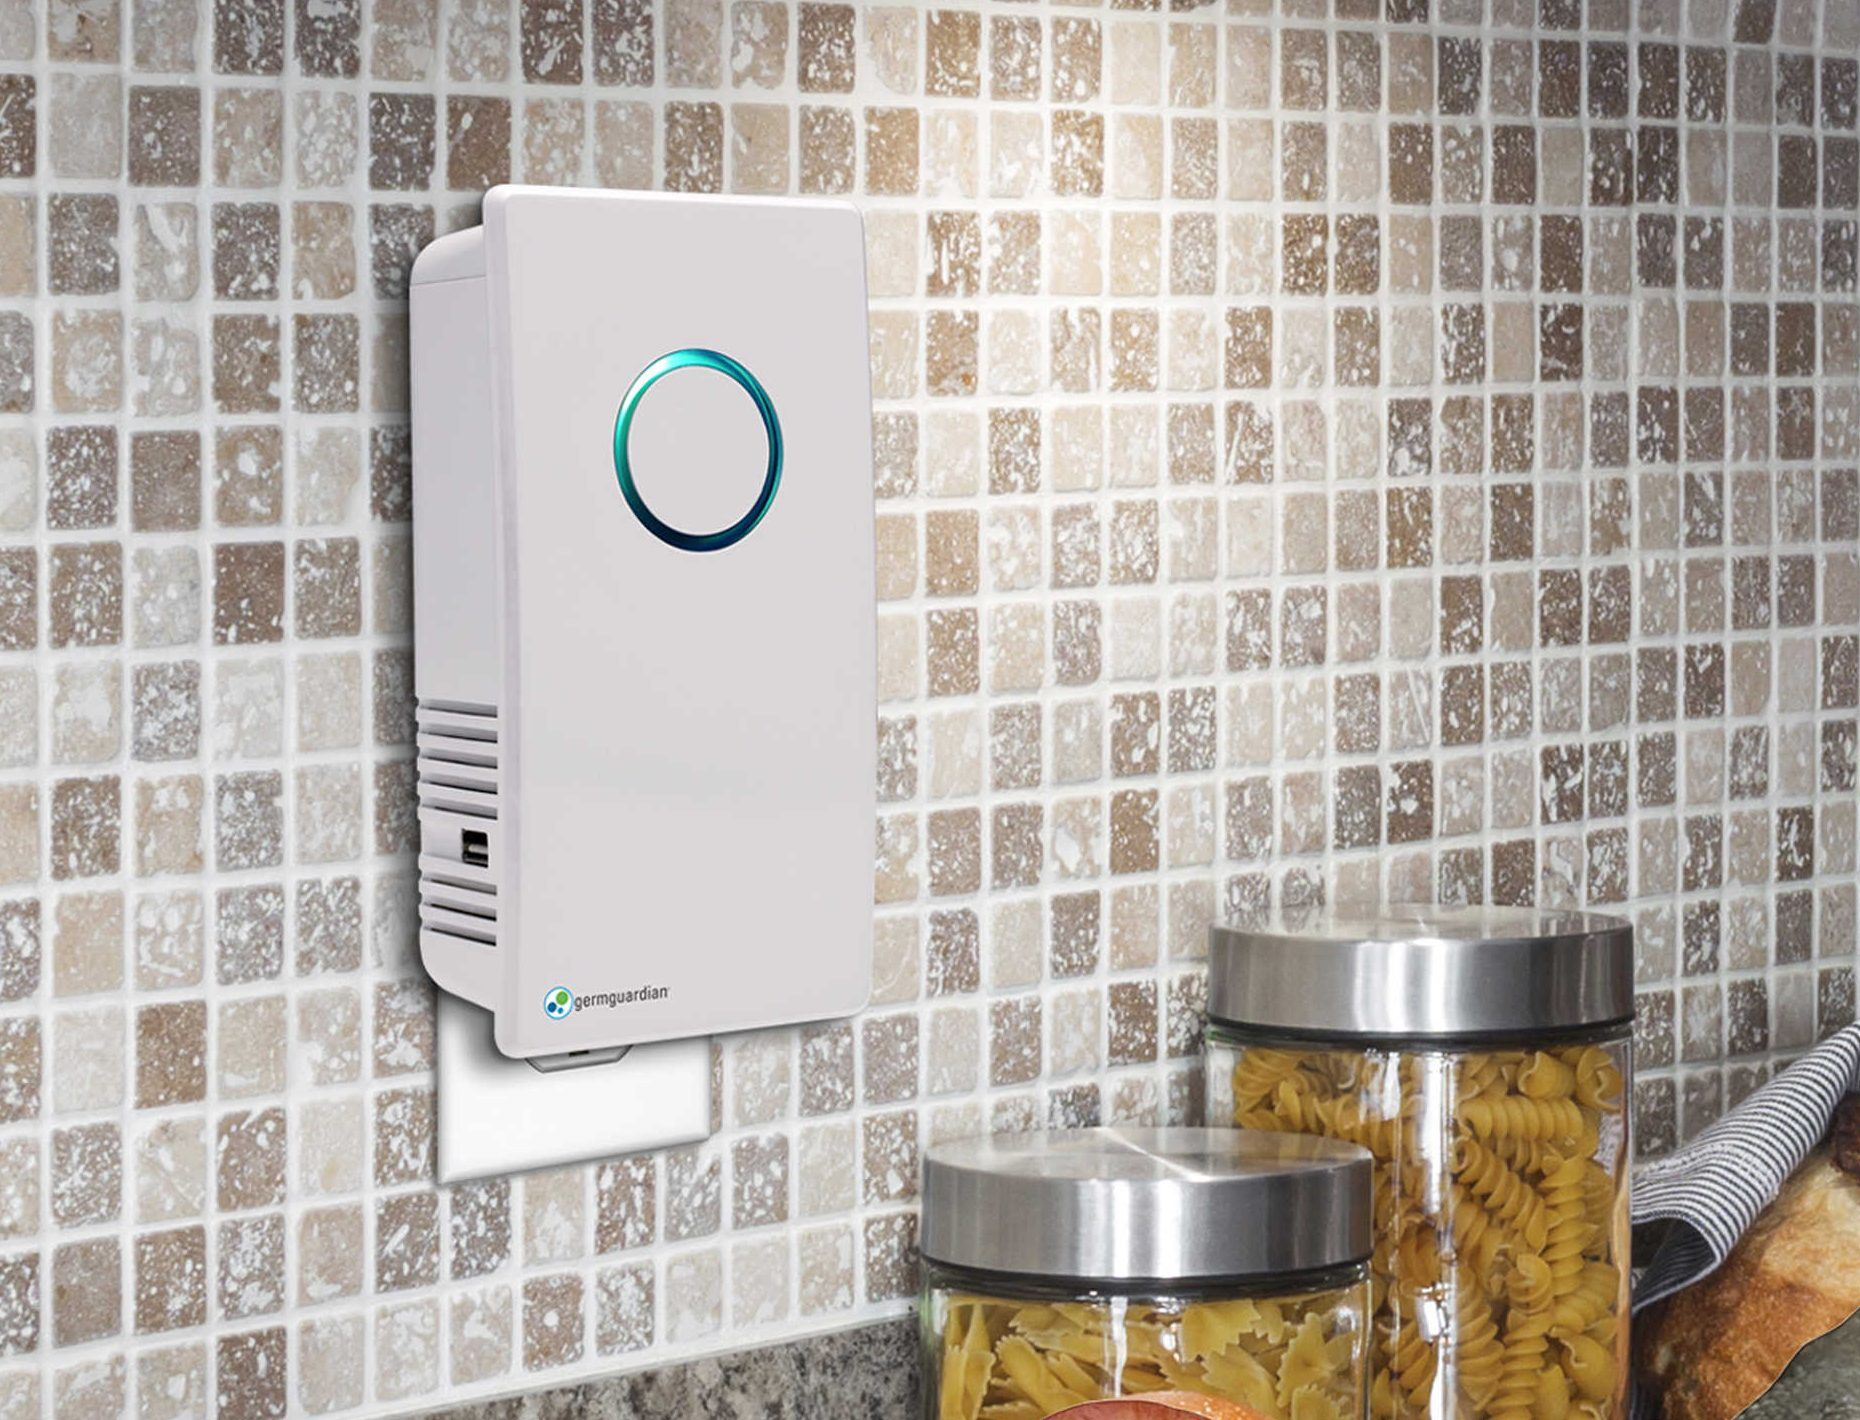 Designed for sanitization as well as odor and allergen